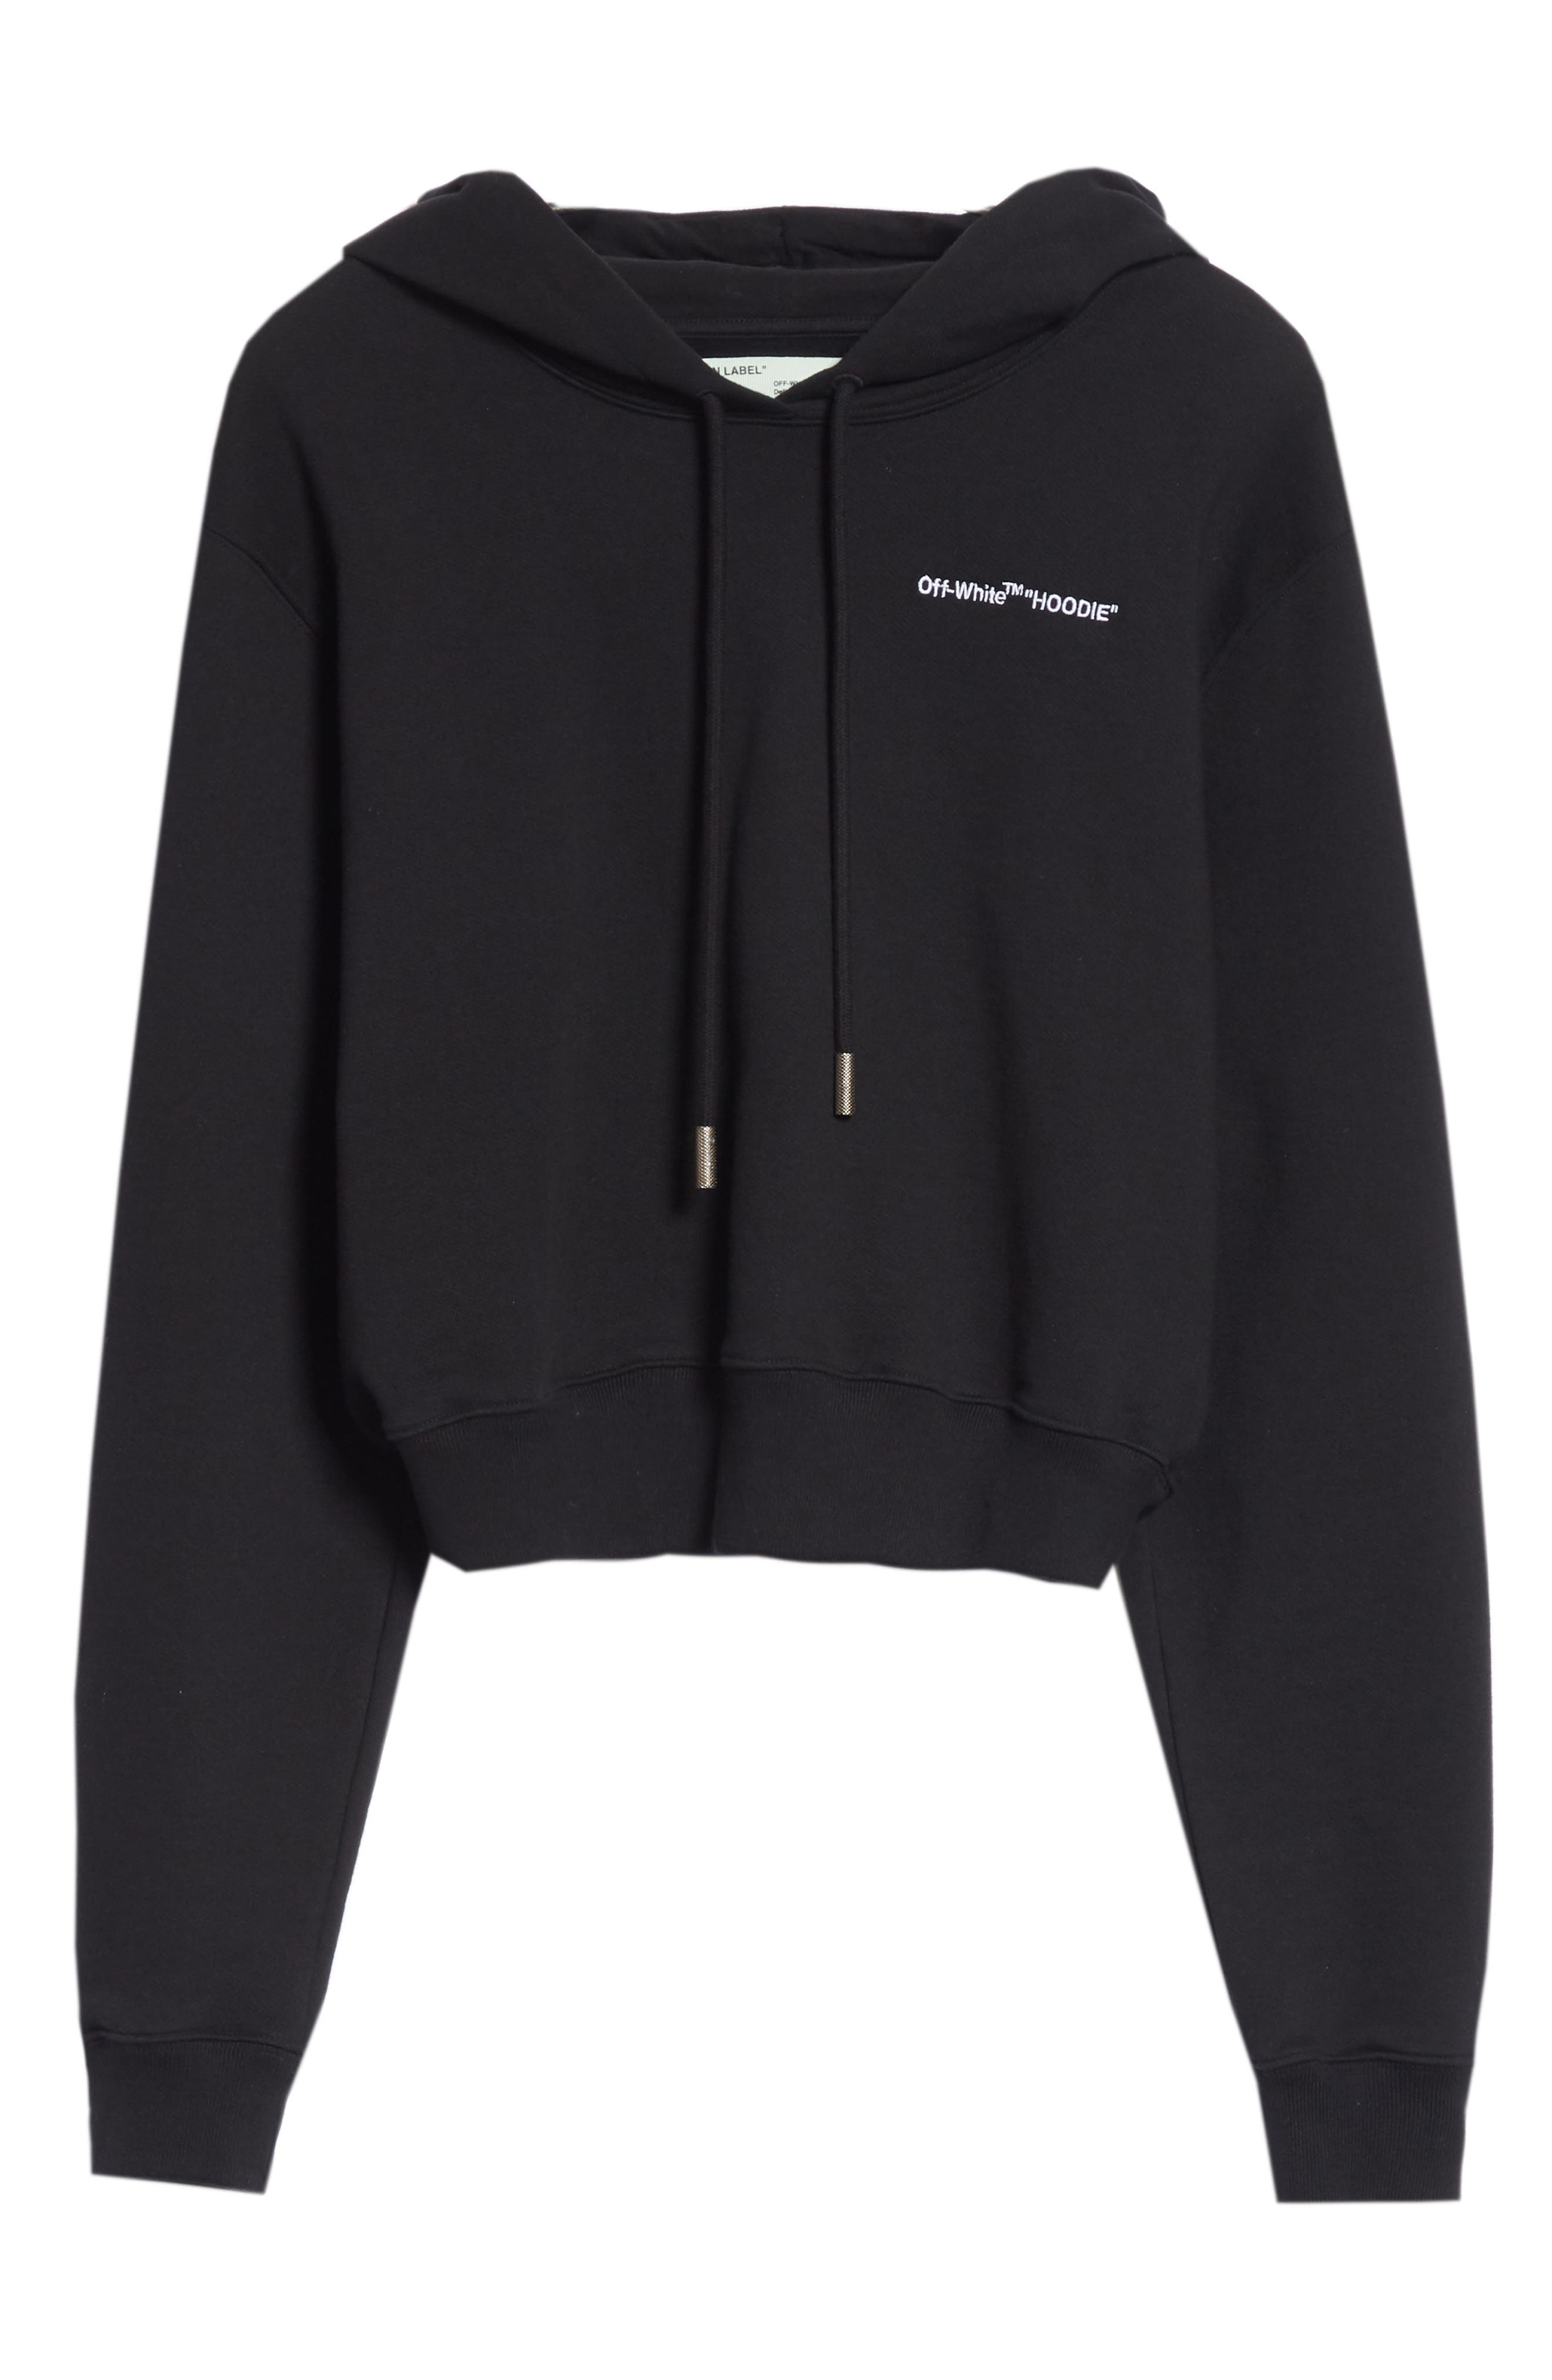 Quotes Crop Hoodie,                             Alternate thumbnail 6, color,                             BLACK WHITE